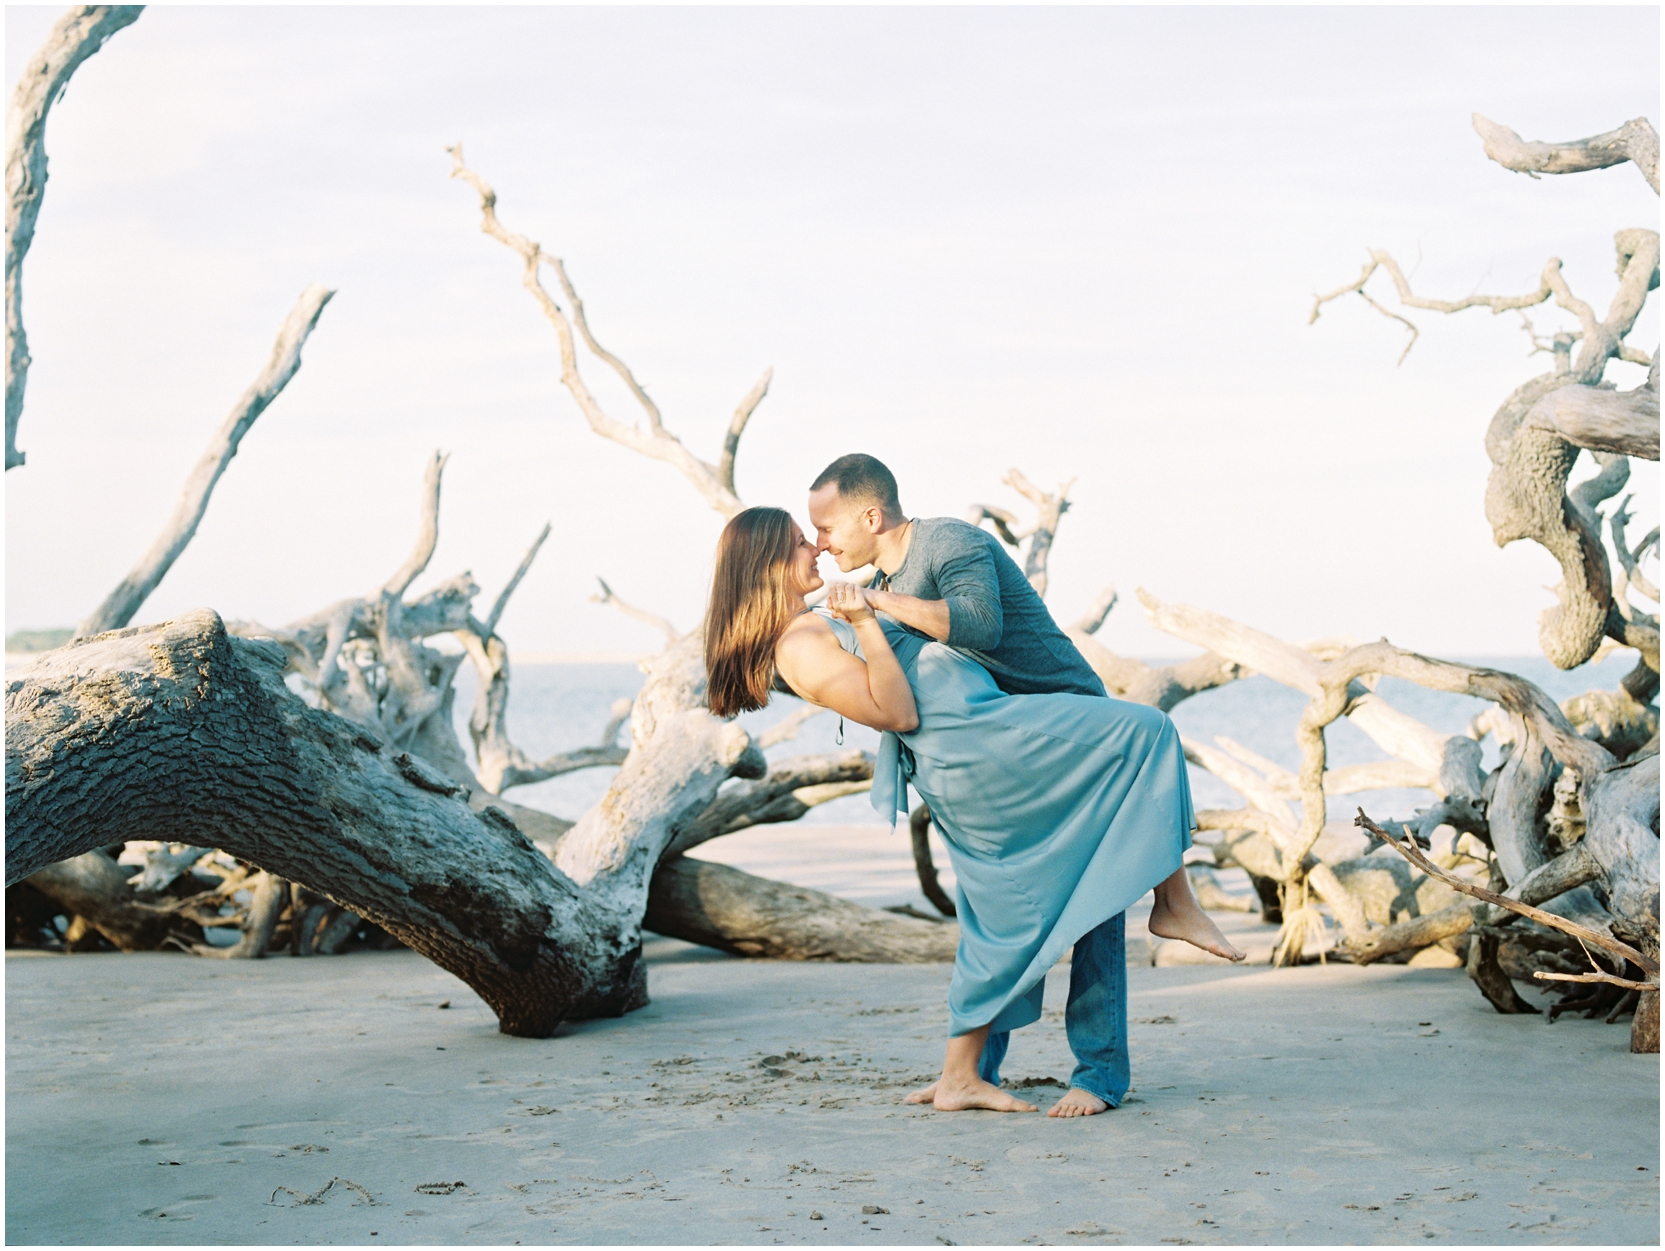 Lisa Silva Photography -Engagement Session at Big Talbot Island- Jacksonville and North East Florida Fine Art Film Photographer_0045.jpg